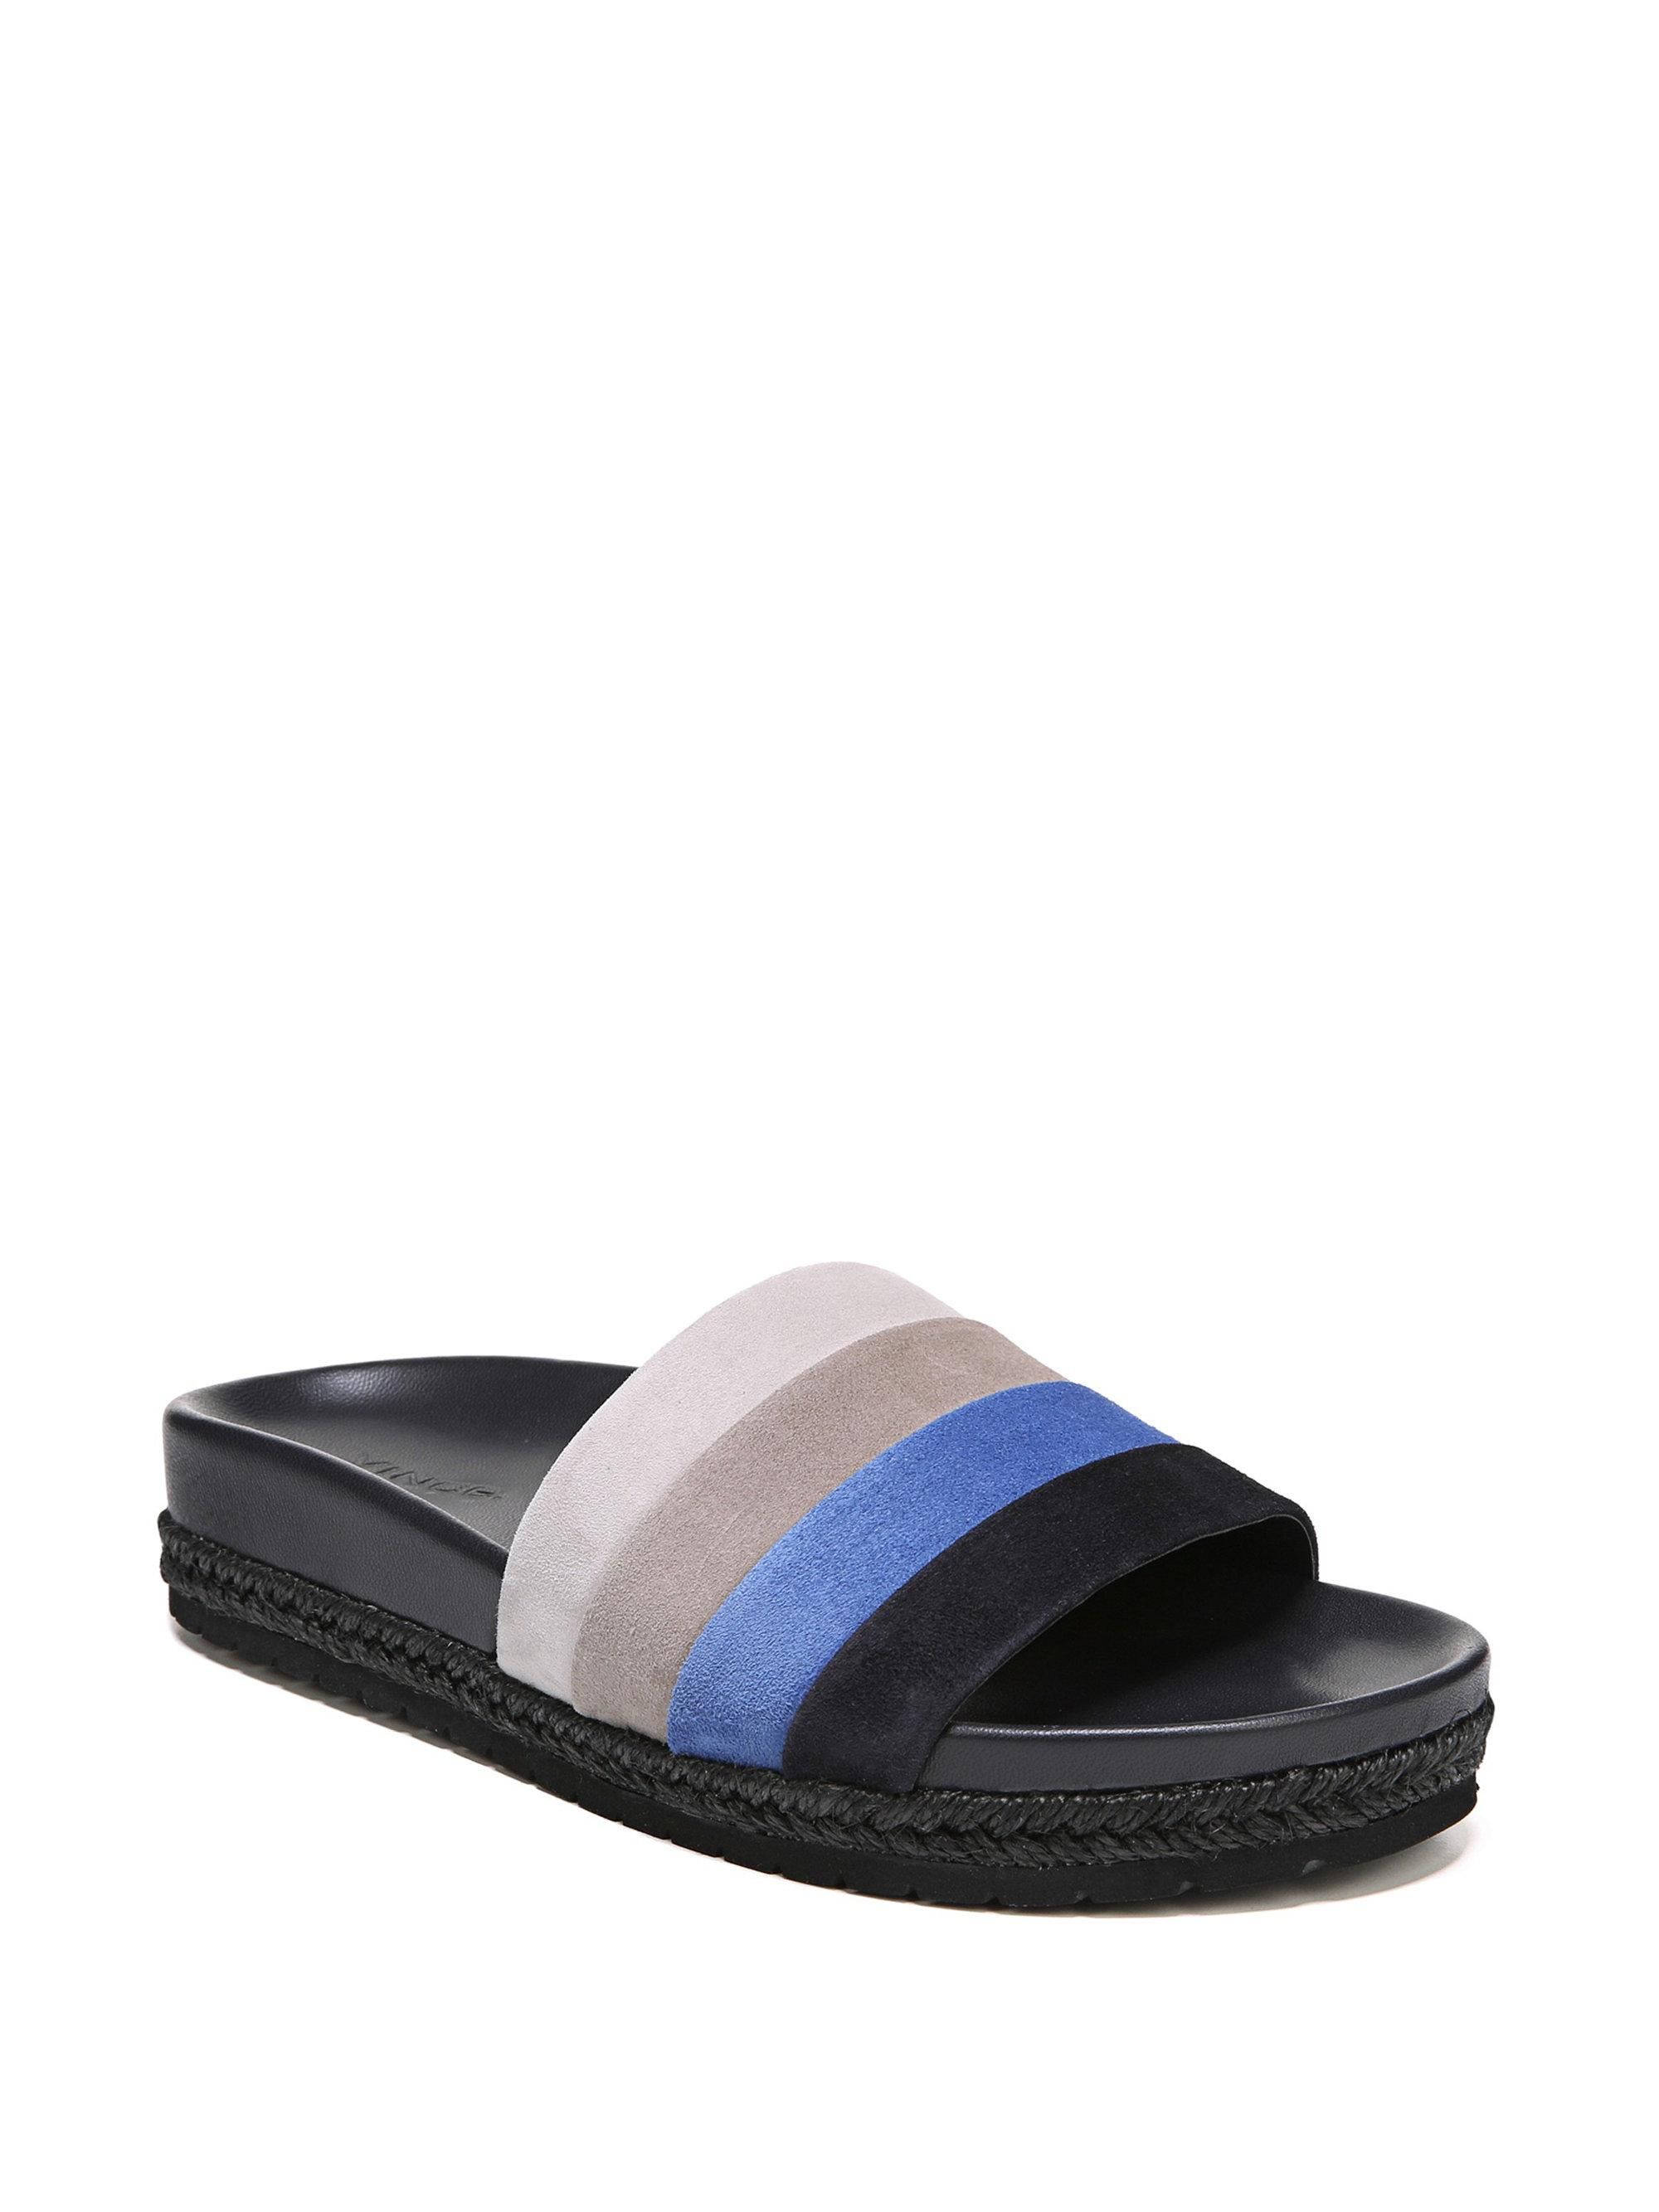 93c38cae89e4d Vince Alisa Suede Sandal in Blue - Save 6.36363636363636% - Lyst